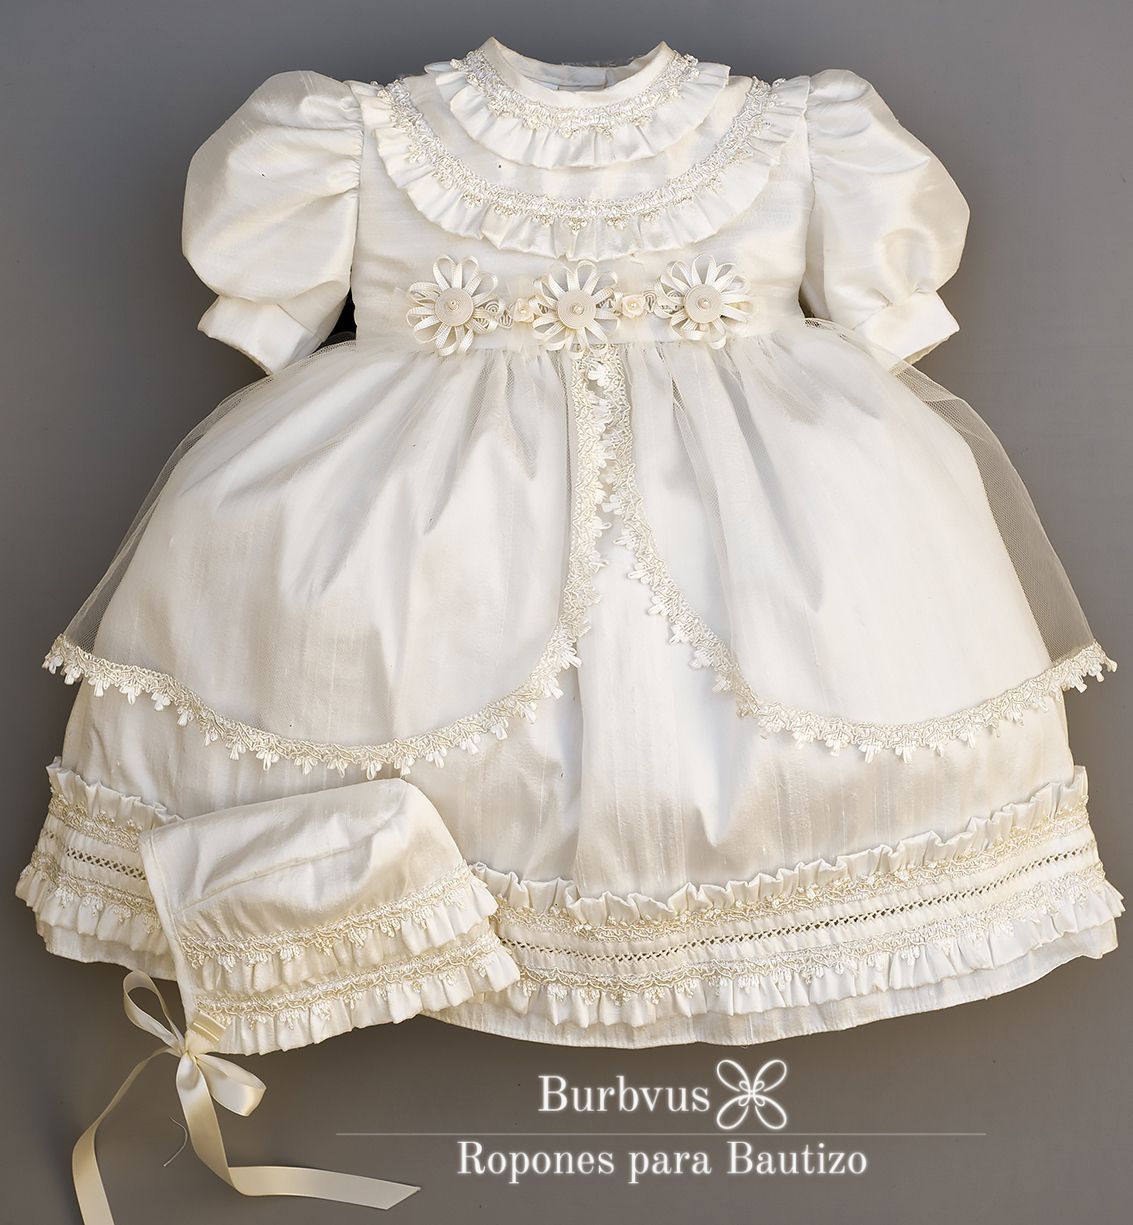 Neoclassical baby girl dress. Christening or baptism gown inspired ...